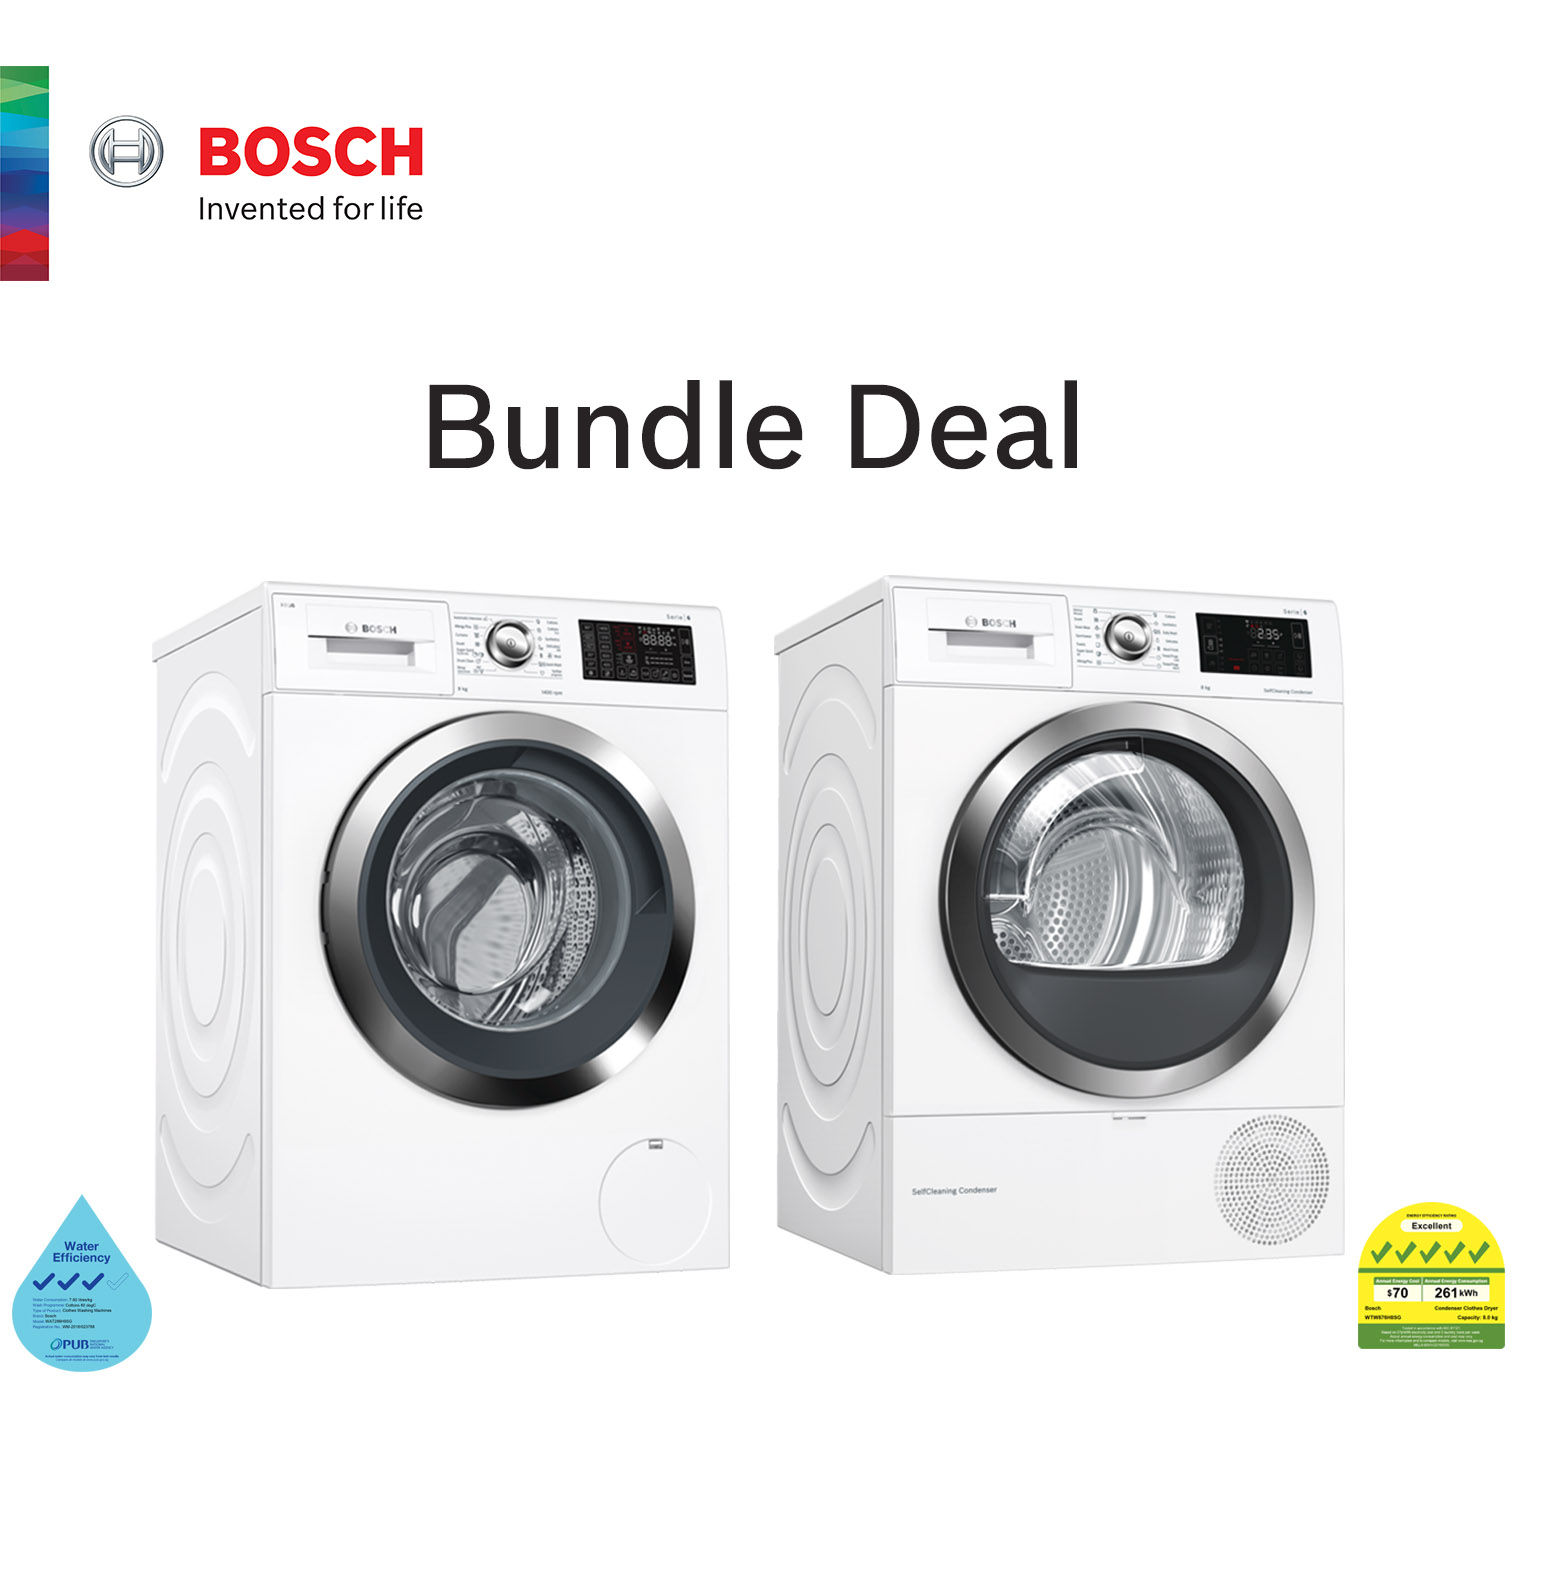 Bosch Smart Home Laundry 9kg Front Load Home Connect Washing Machine White Wat286h9sg  1400 Rpm + 8 Kg Idos Feature Front Load Tumble Dryer Wtw876h8sg With Heat Pump.